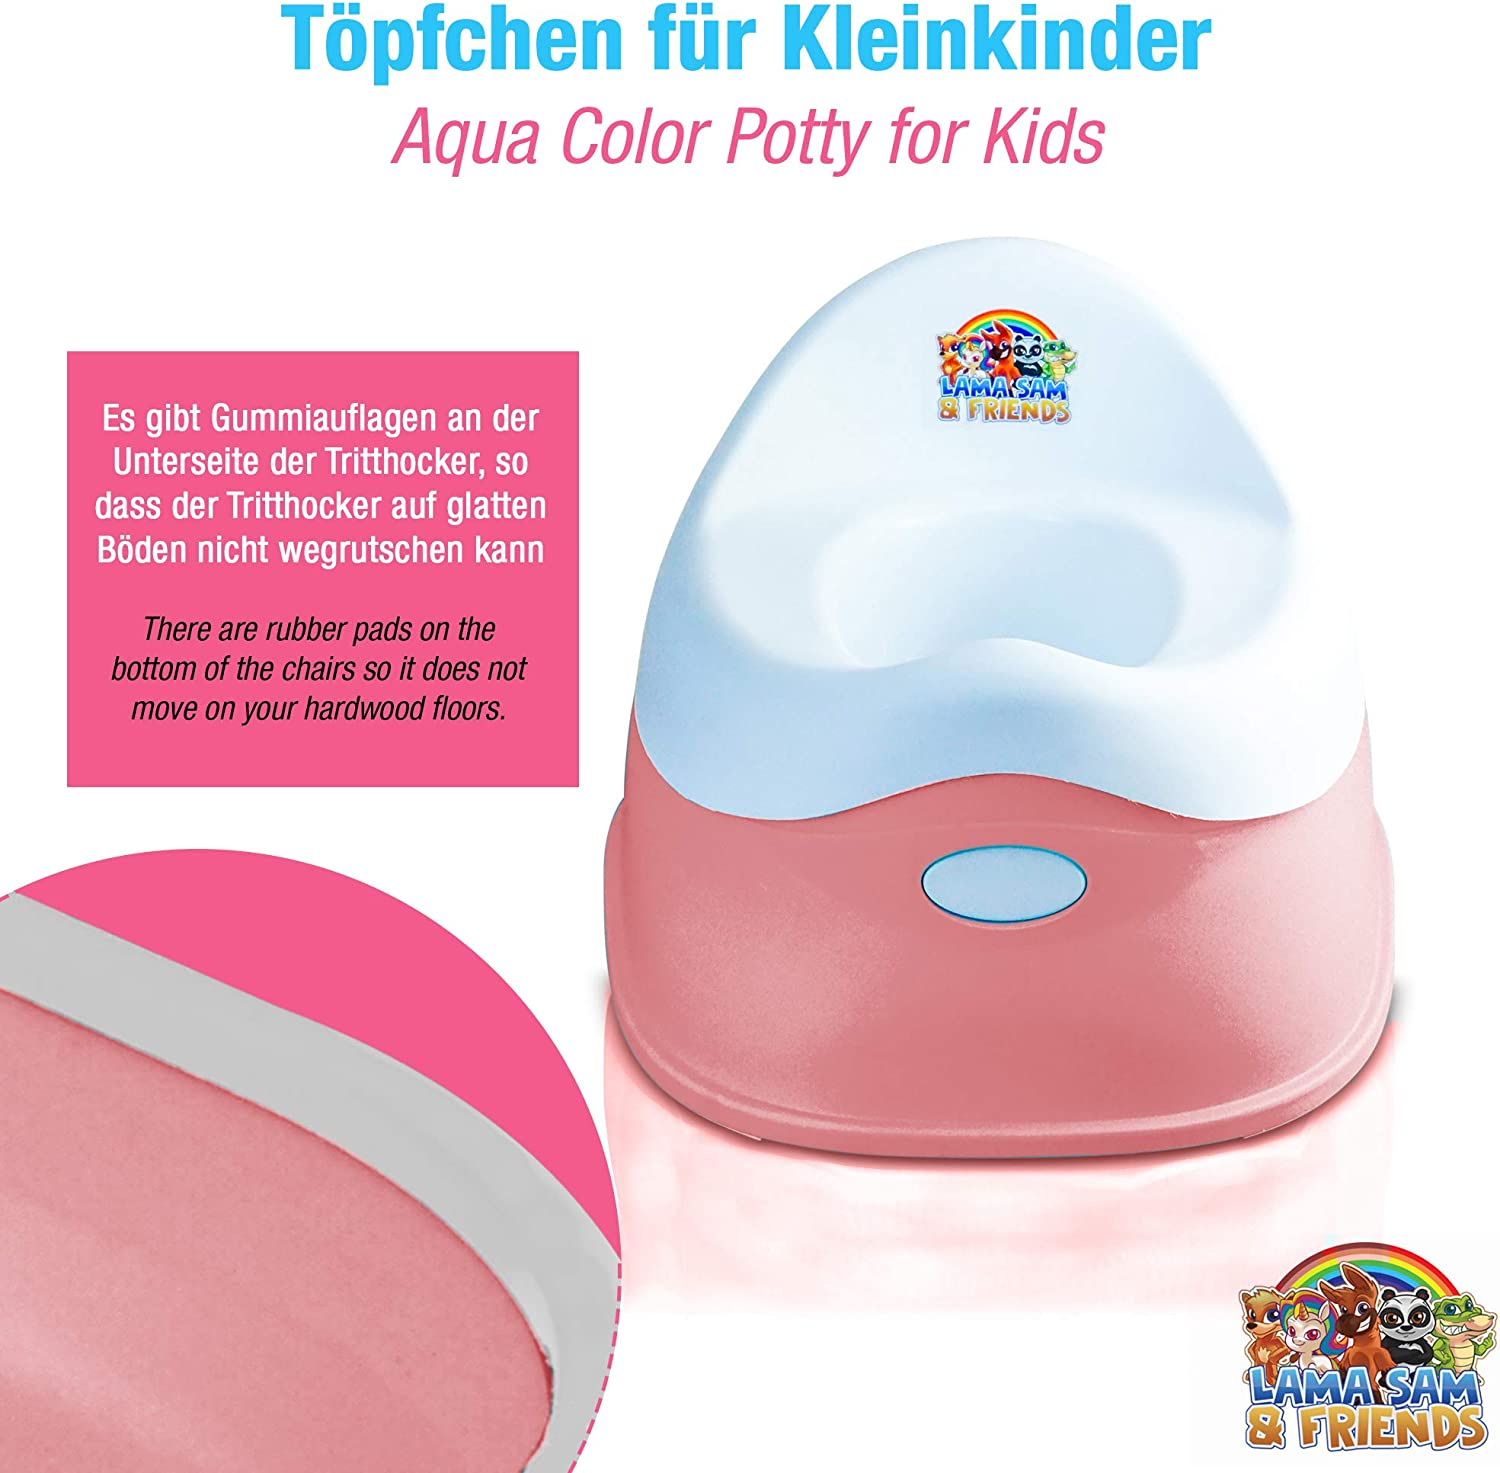 Lama Sam /& Friends 3 Years Anti-Slip Function 18 Months to Approx Pink 2-Piece Baby Pot Potty from Approx